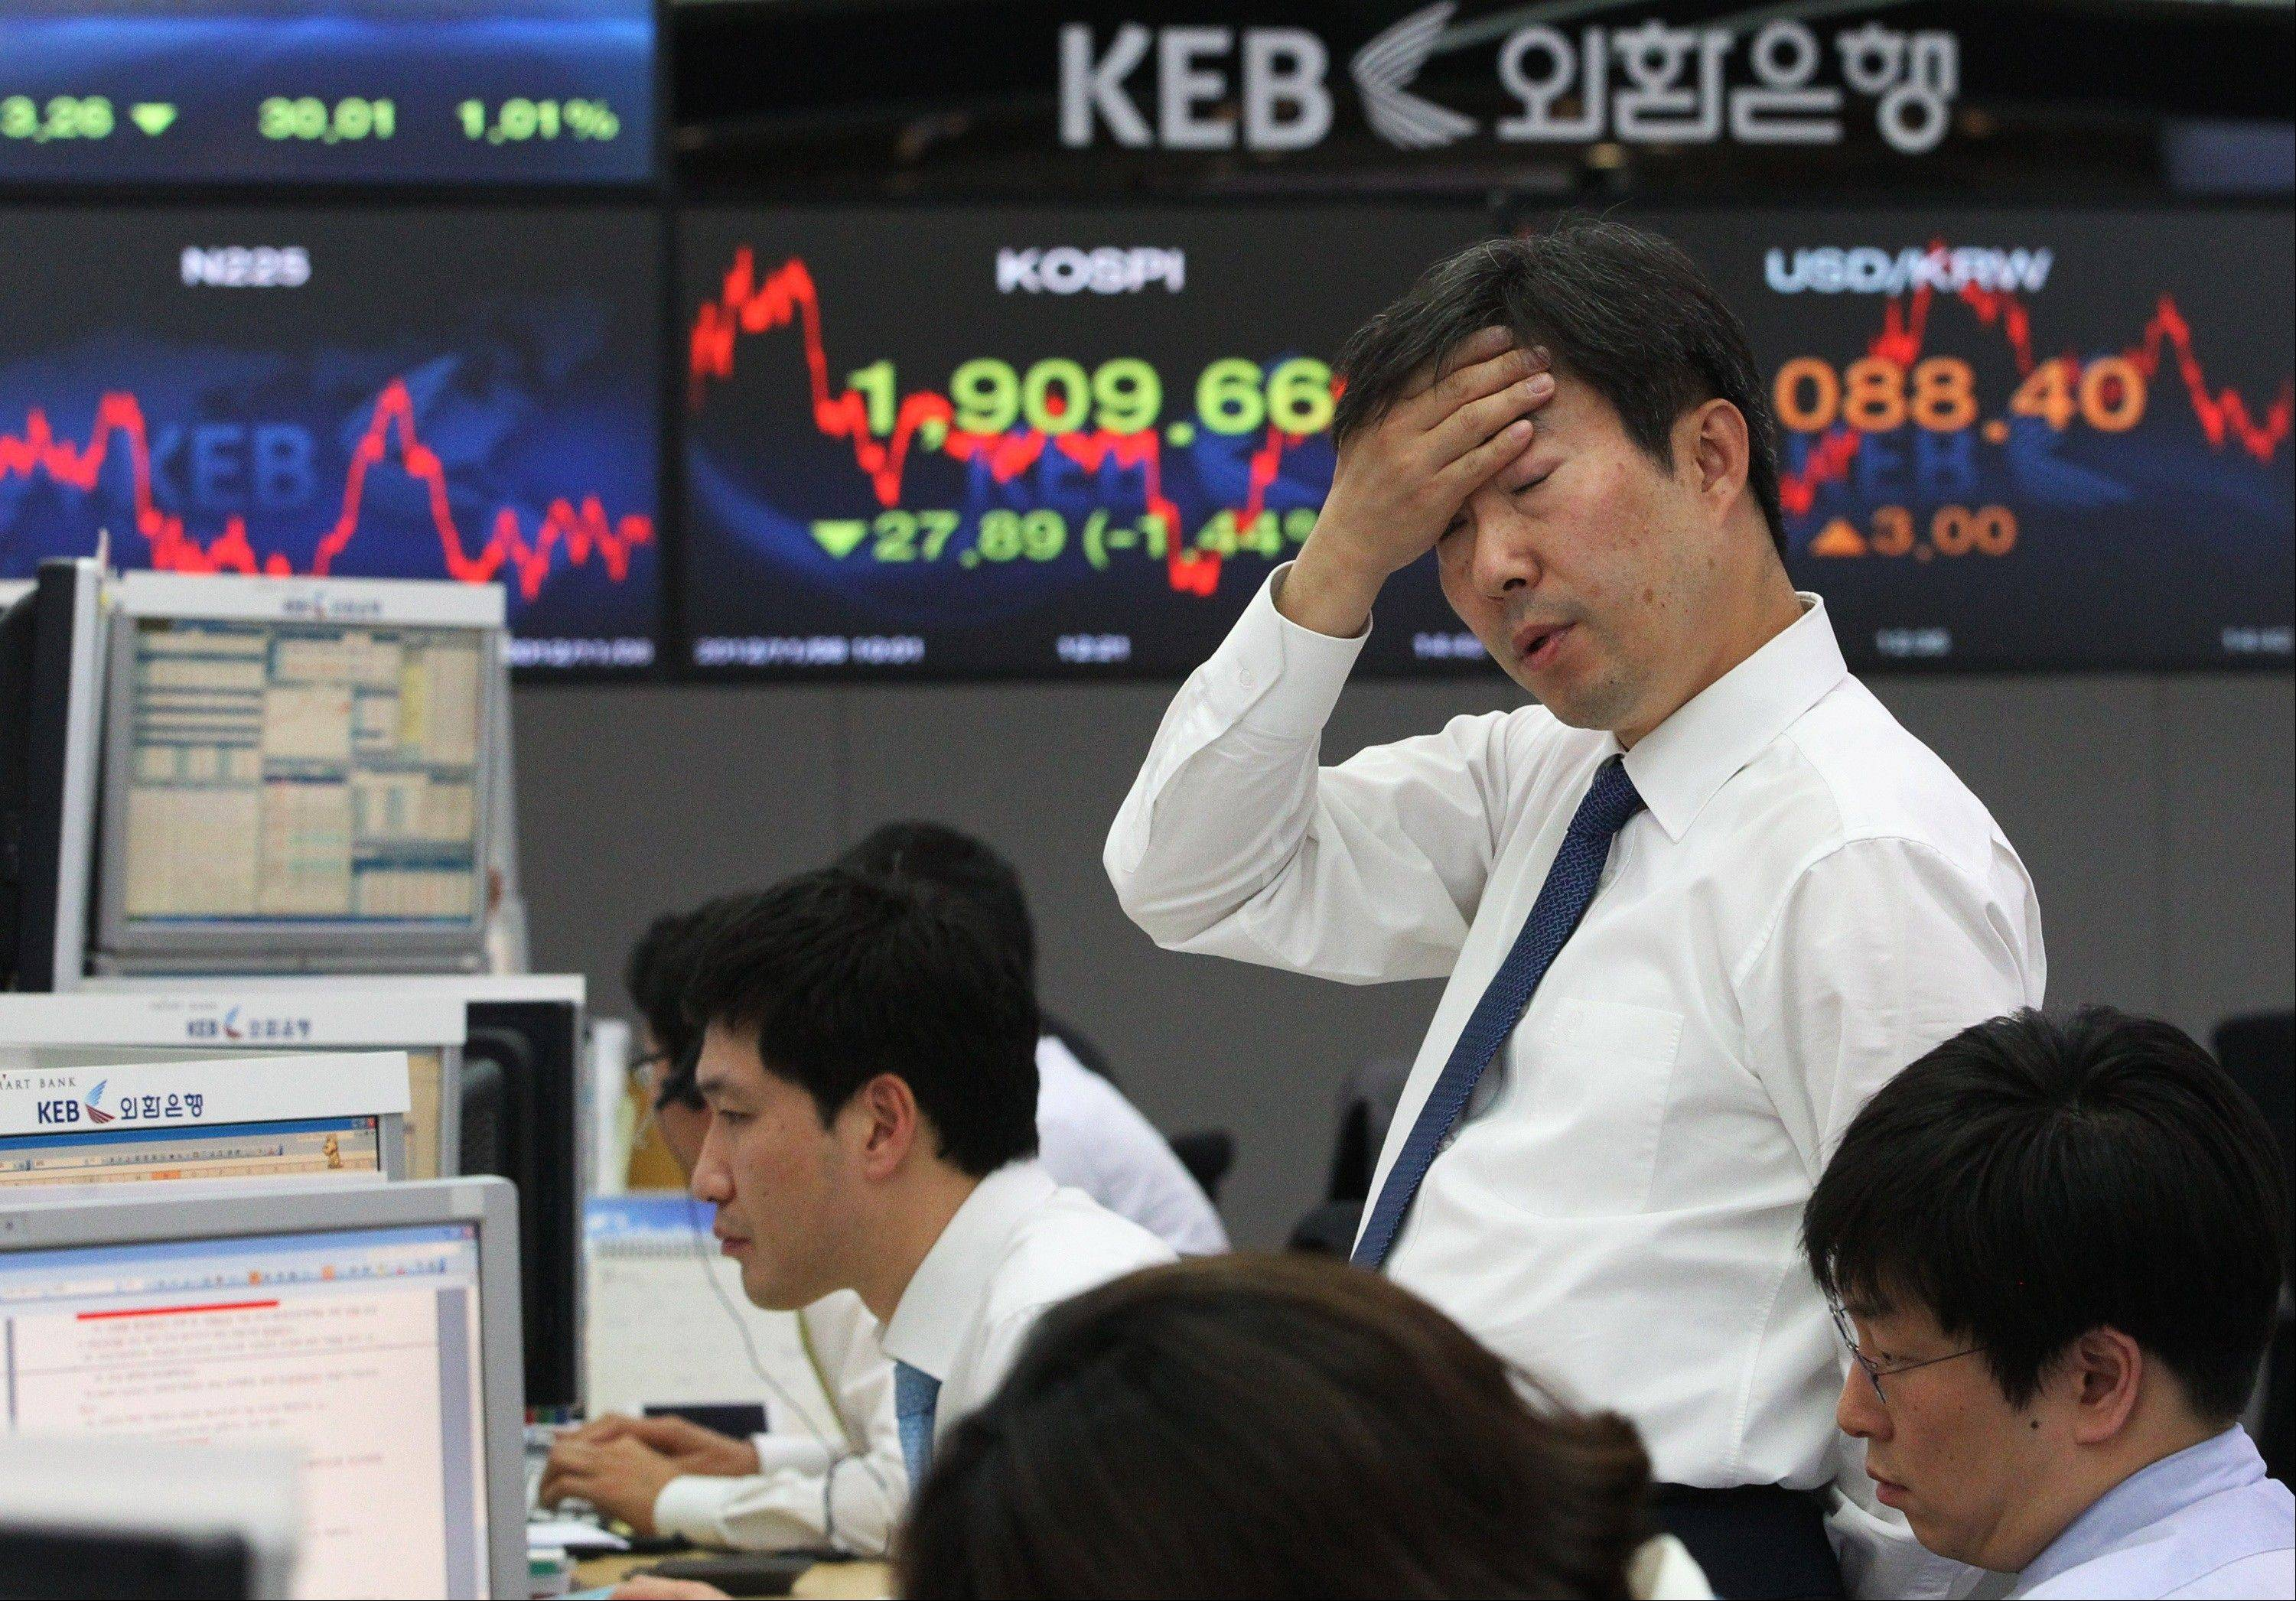 A currency trader reacts in front of screens showing the Korea Composite Stock Price Index (KOSPI), center, and foreign exchange rate, right, at the foreign exchange dealing room of the Korea Exchange Bank headquarters in Seoul, South Korea, Thursday, Nov. 8, 2012. South Korea's Kospi dropped 1.19 percent at 1,914.43.